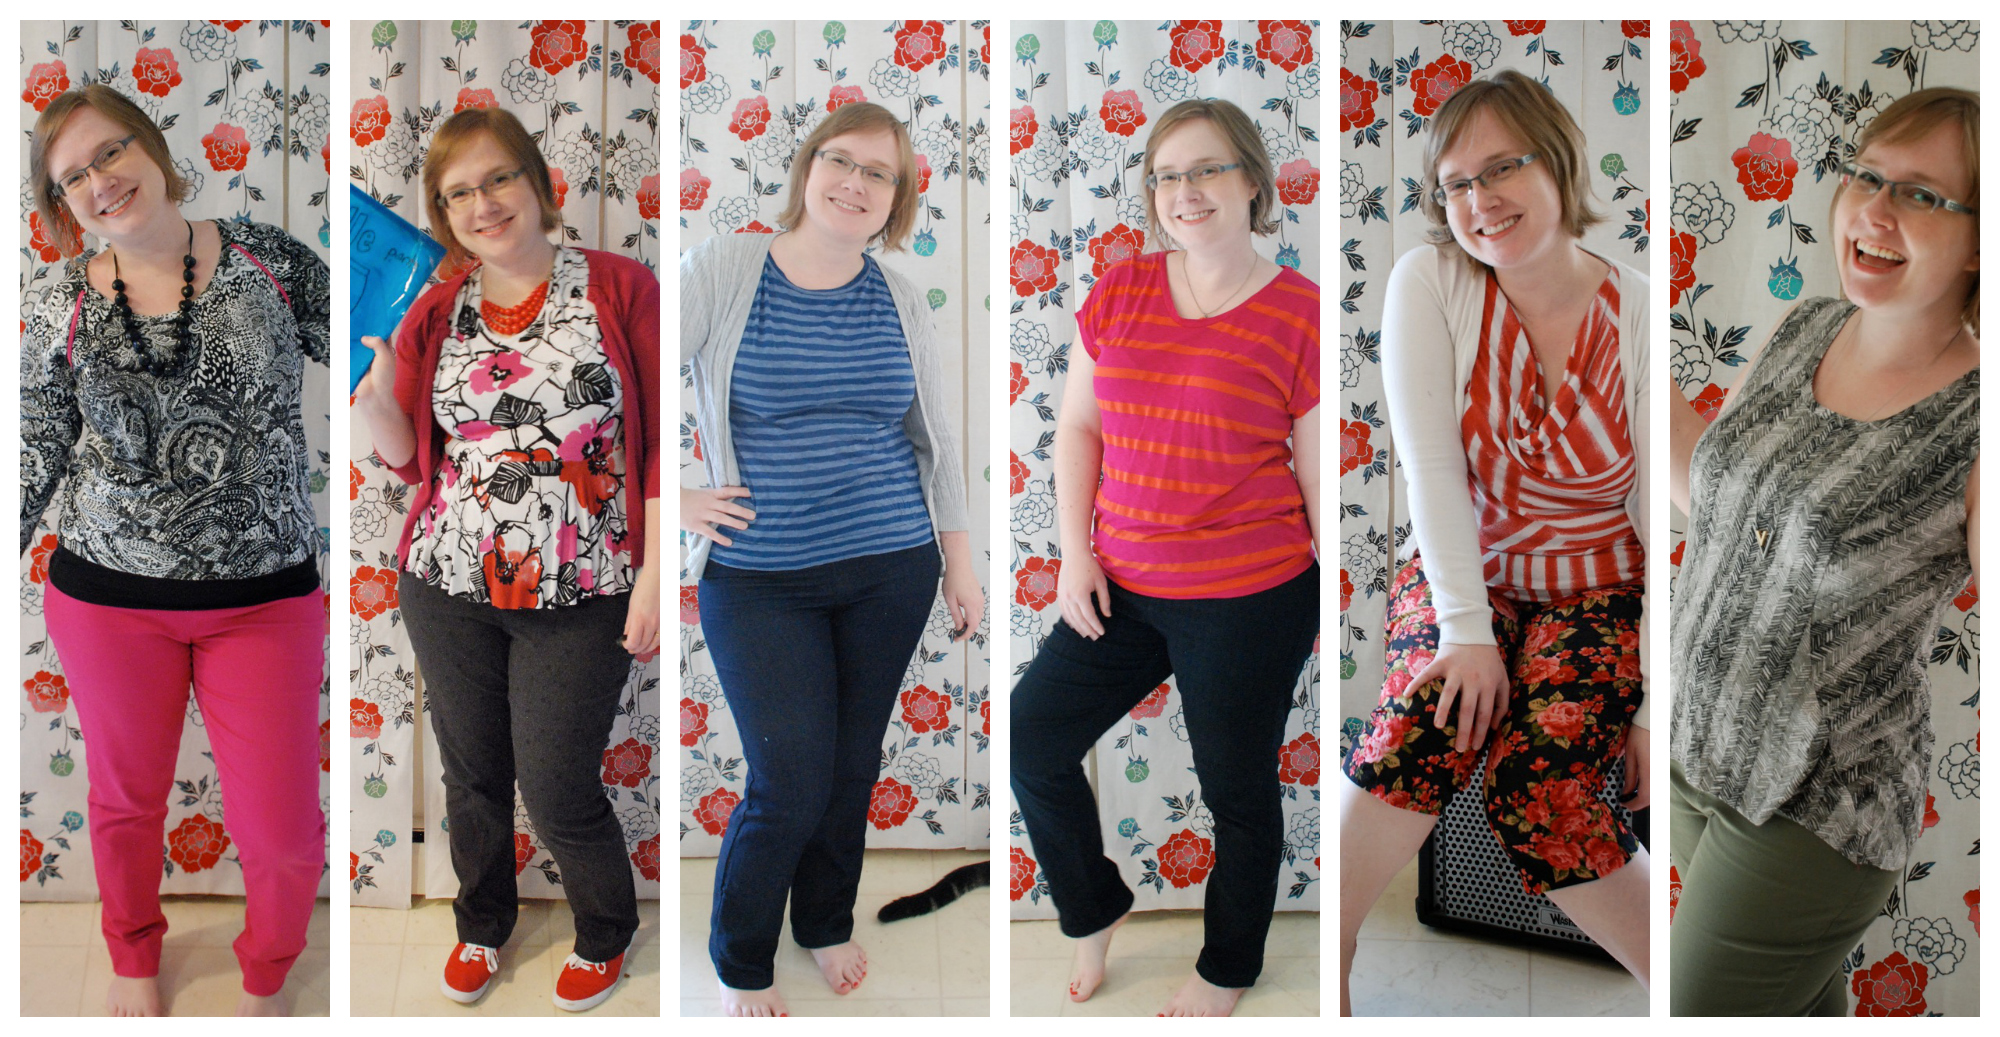 MMM Elle Pants Collage.jpg.jpg